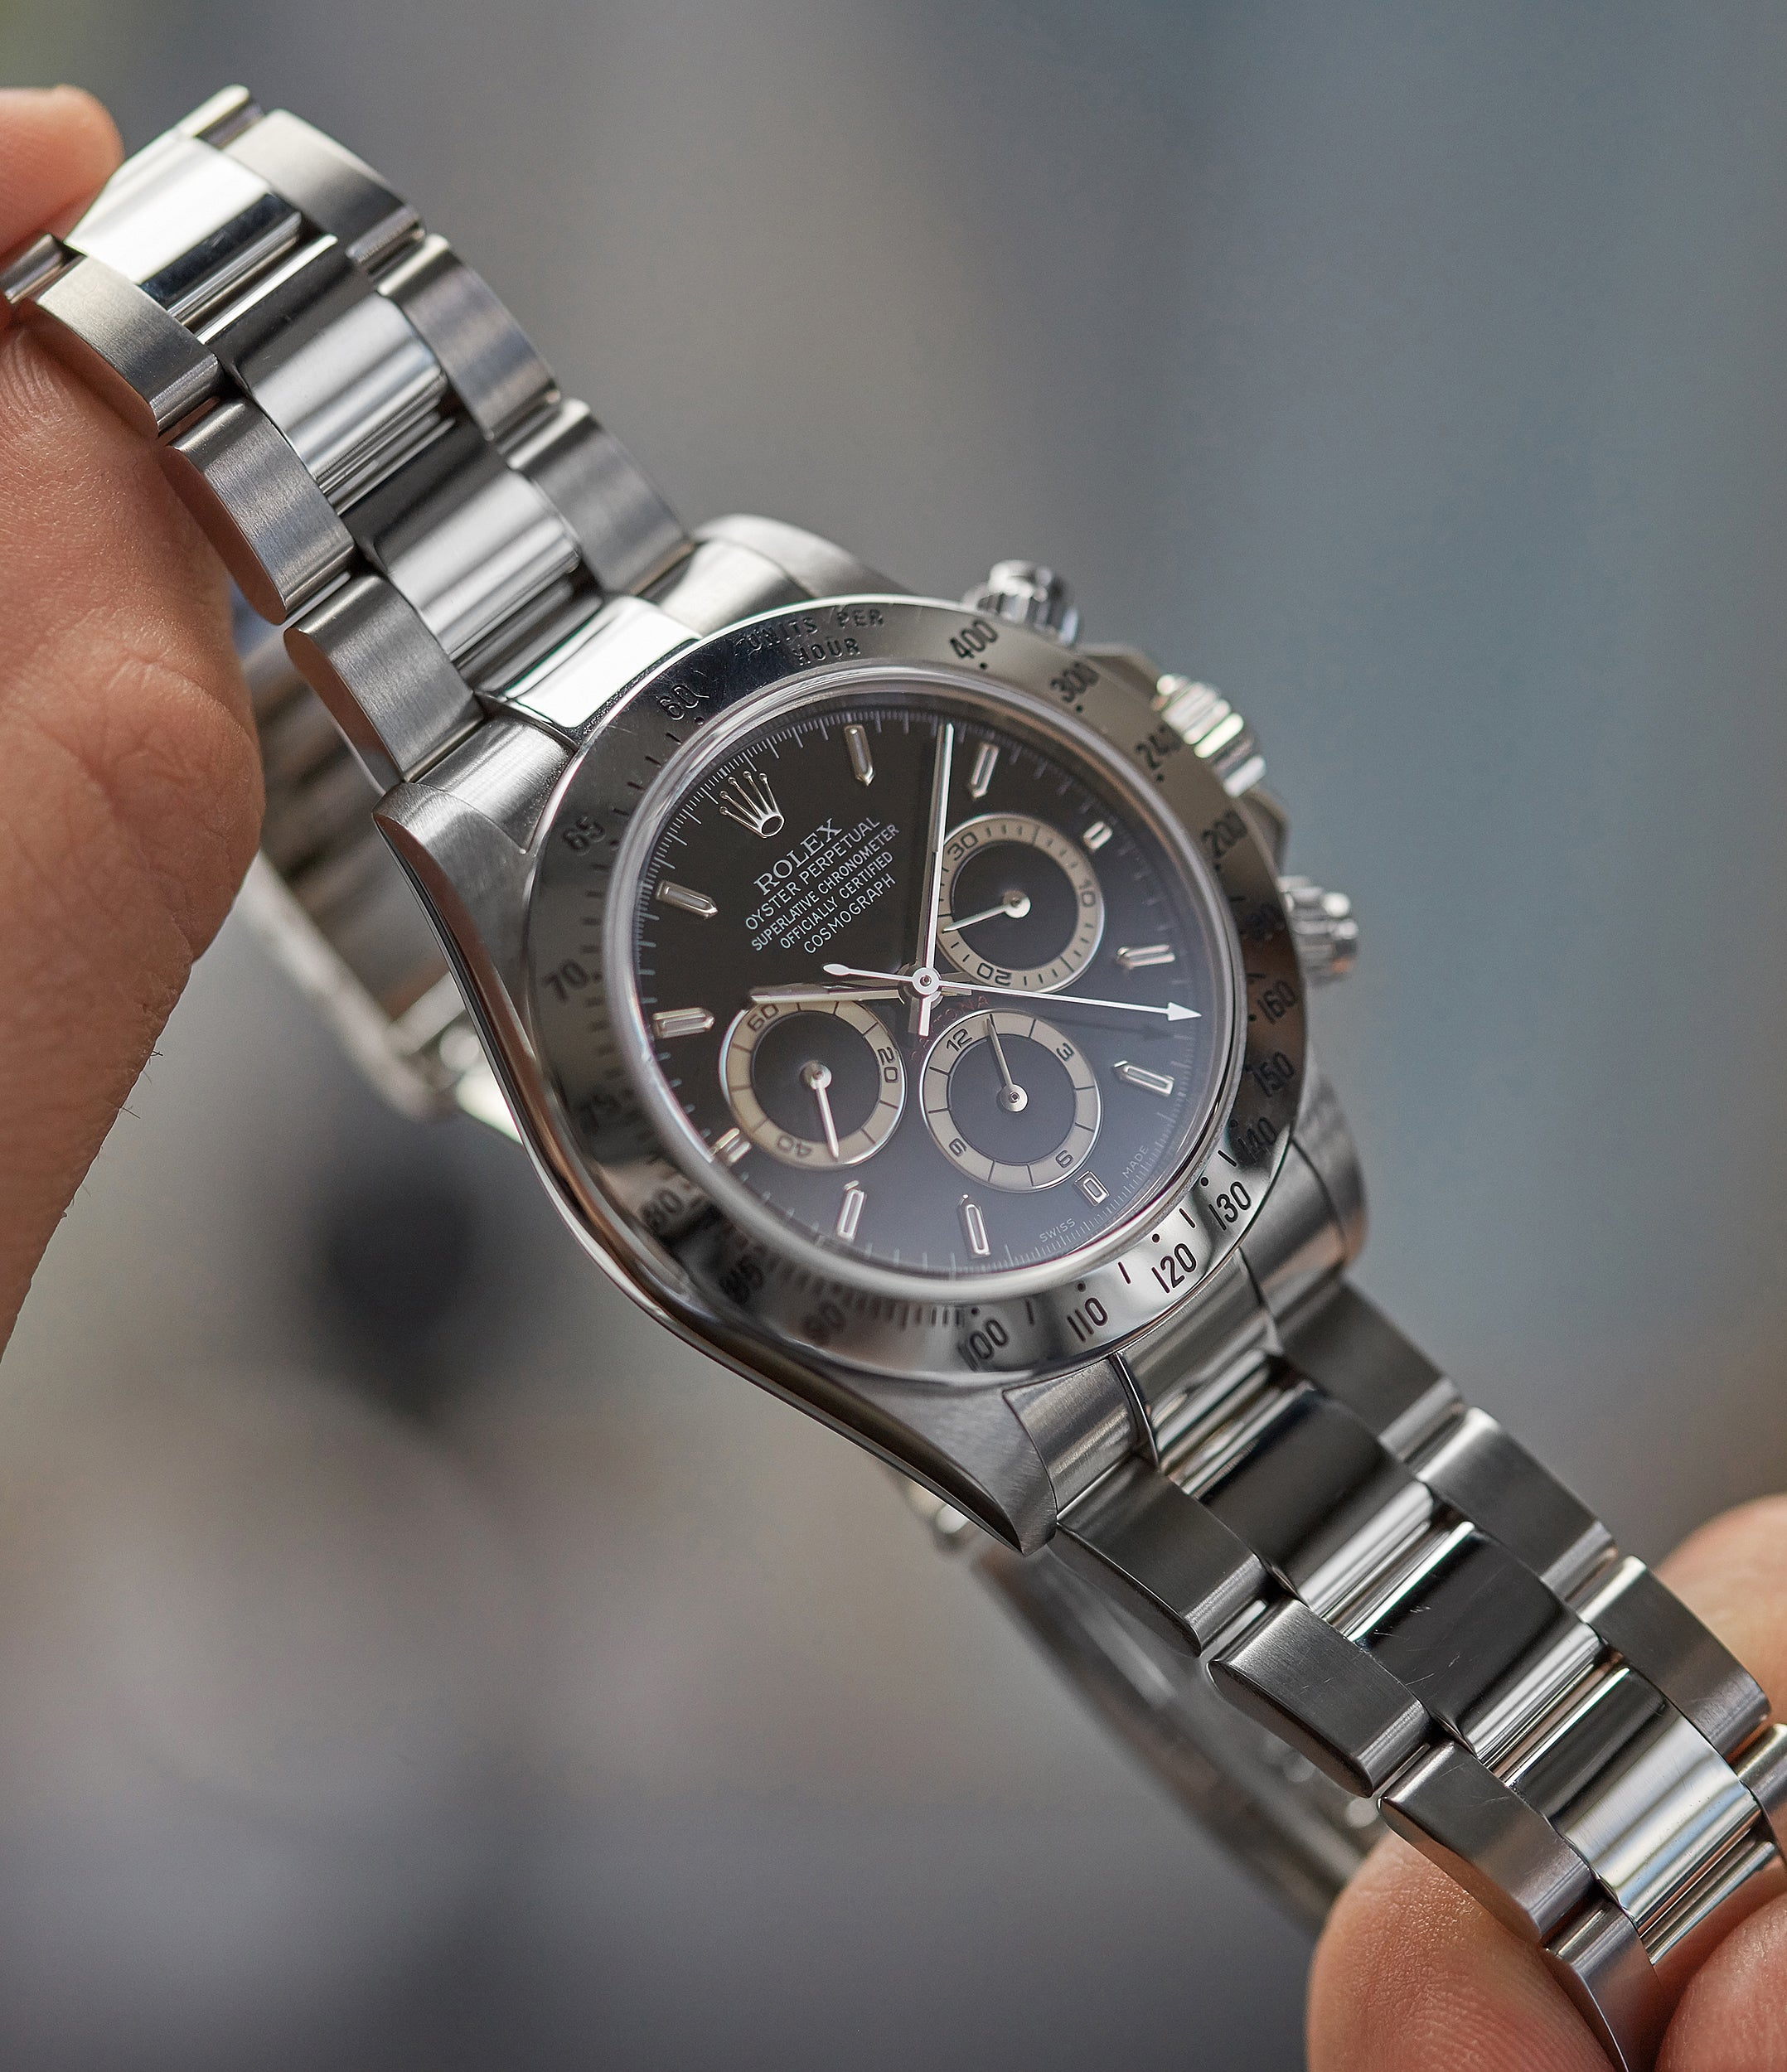 purchase stainless steel oyster bracelet Rolex Zenith Daytona 16520